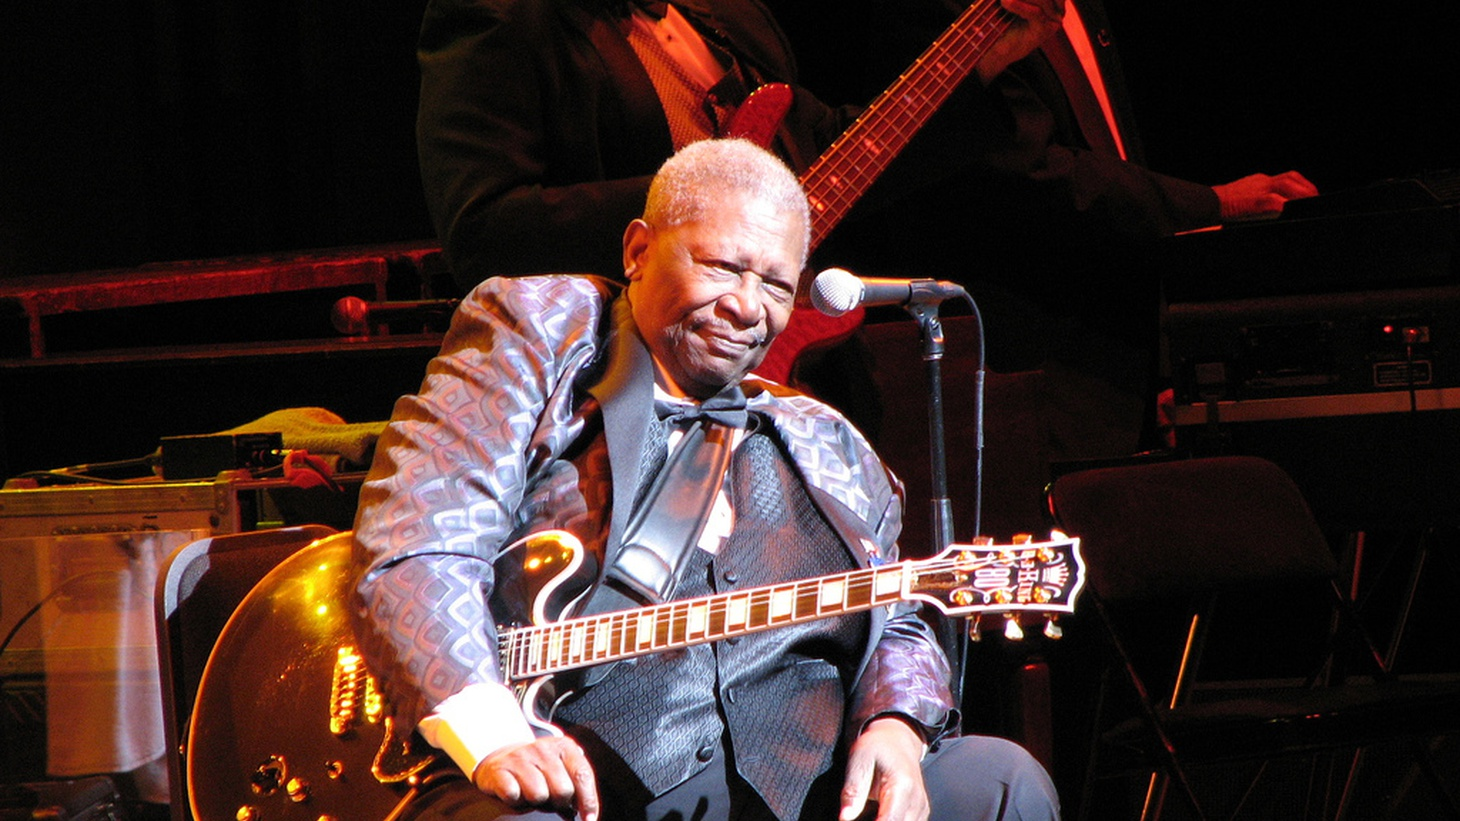 """B.B. King  picked cotton on the plantation where he was born, but rose to become a world-travelling ambassador for the blues. He died yesterday in Las Vegas at the age of 89. """"Lucille"""" was B.B. King's song about one of his first guitars, and it's the name he gave all the others he played during his extraordinary career."""